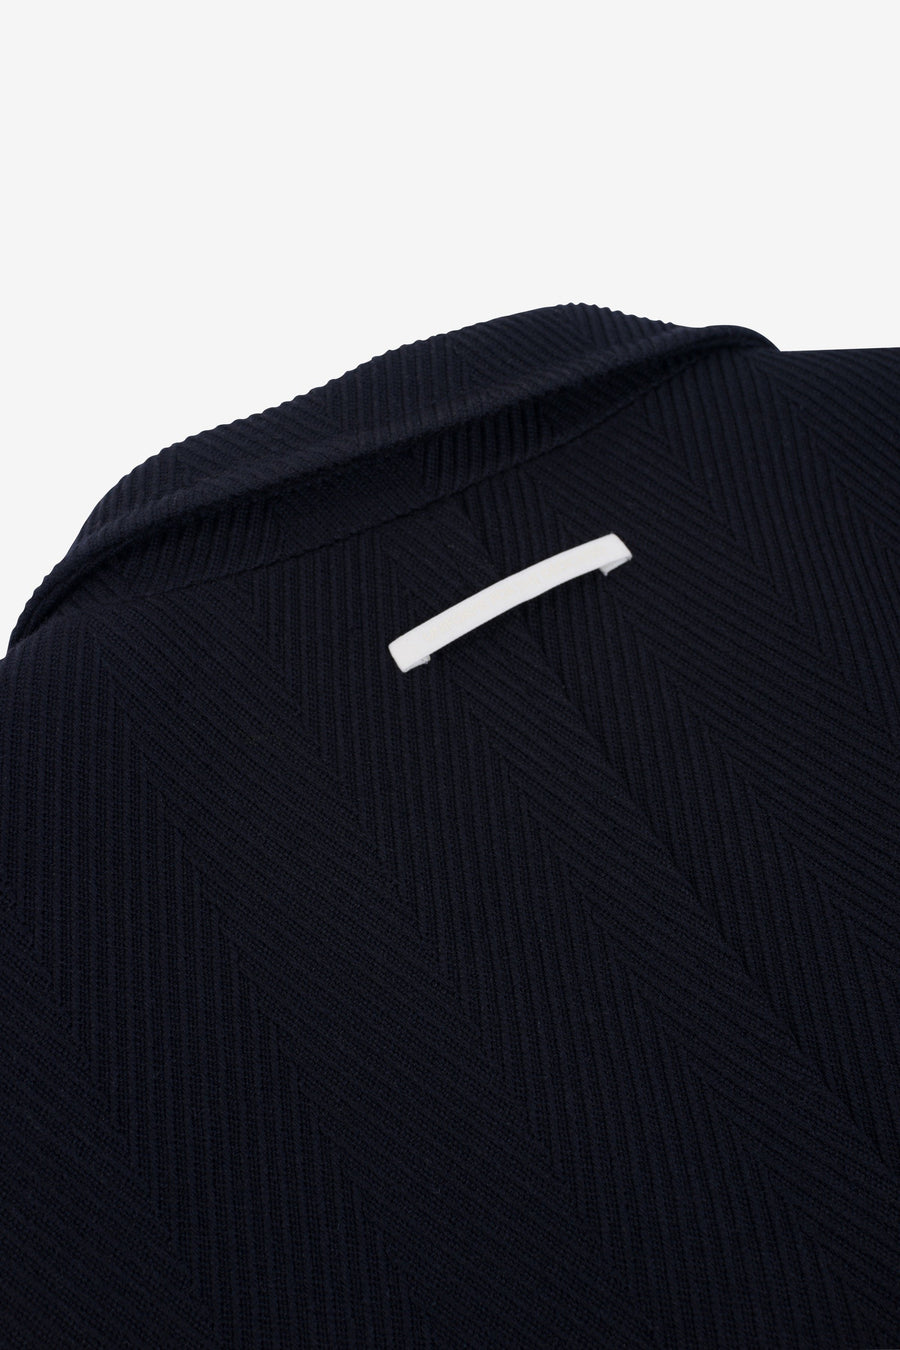 CLASSIC OVERCOAT - Wool Herringbone